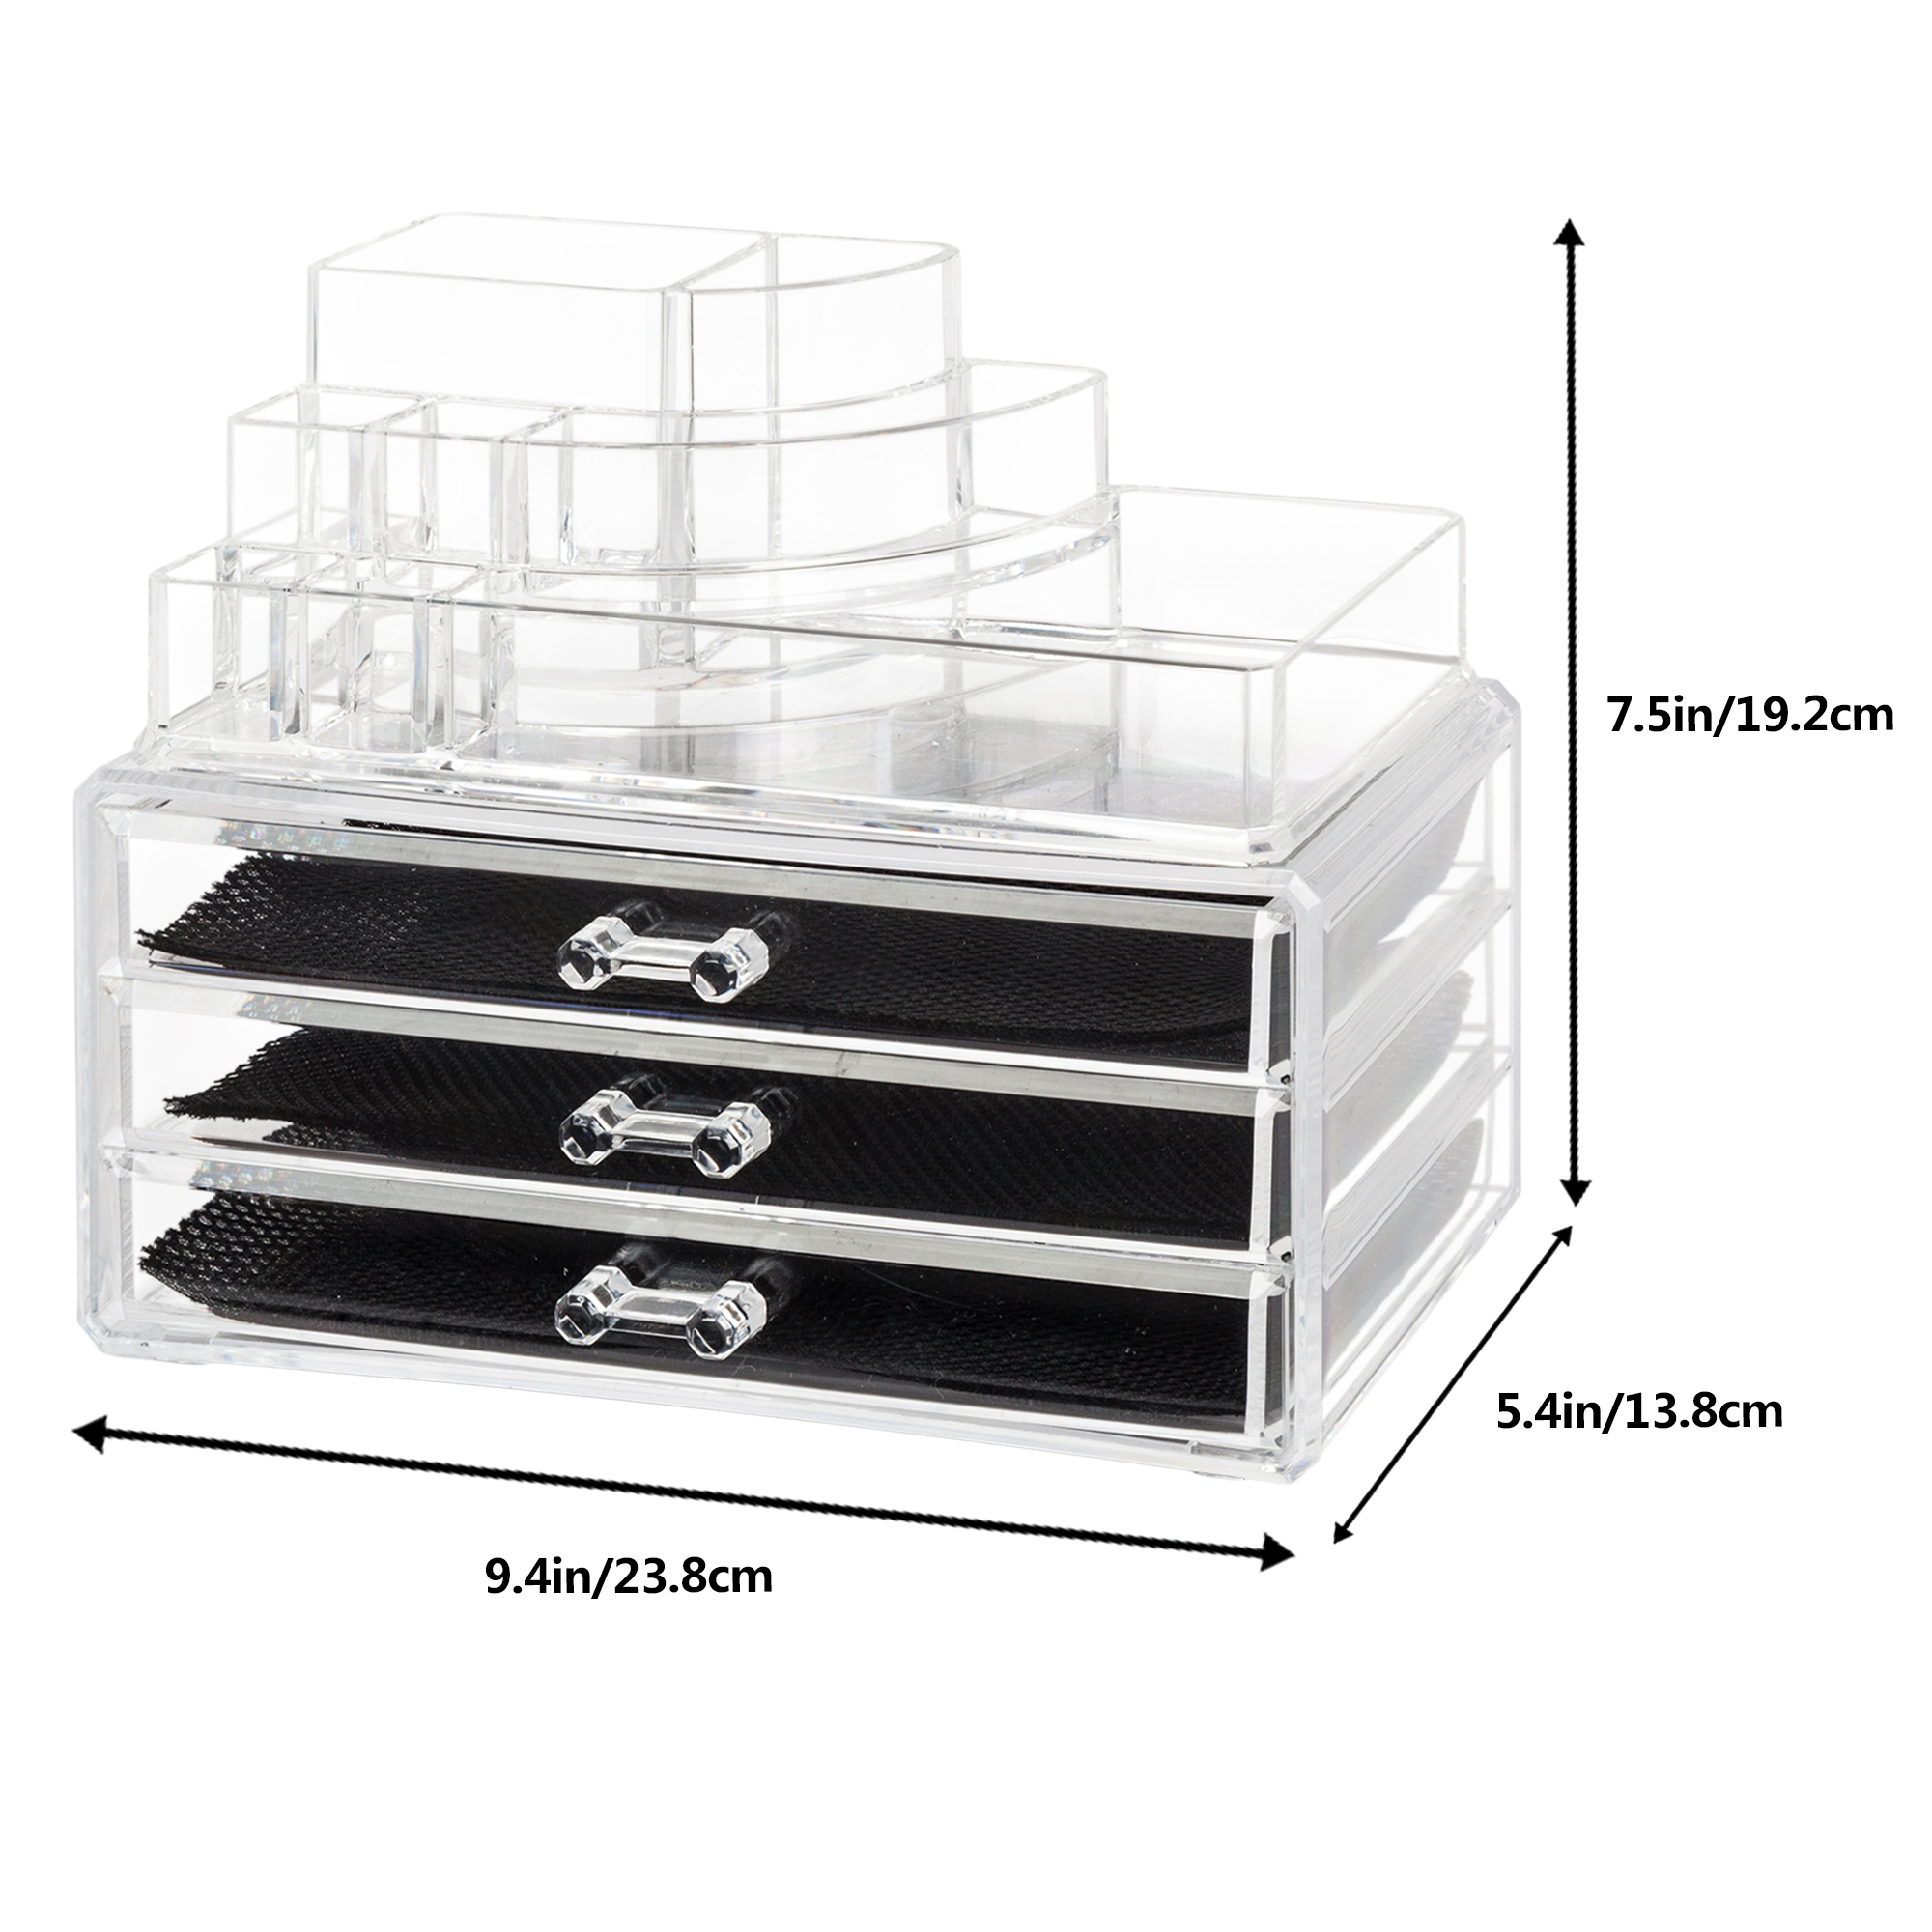 Details About Beauty Cosmetic Makeup Jewelry Storage Rack Shelves Case Box  Table Holder